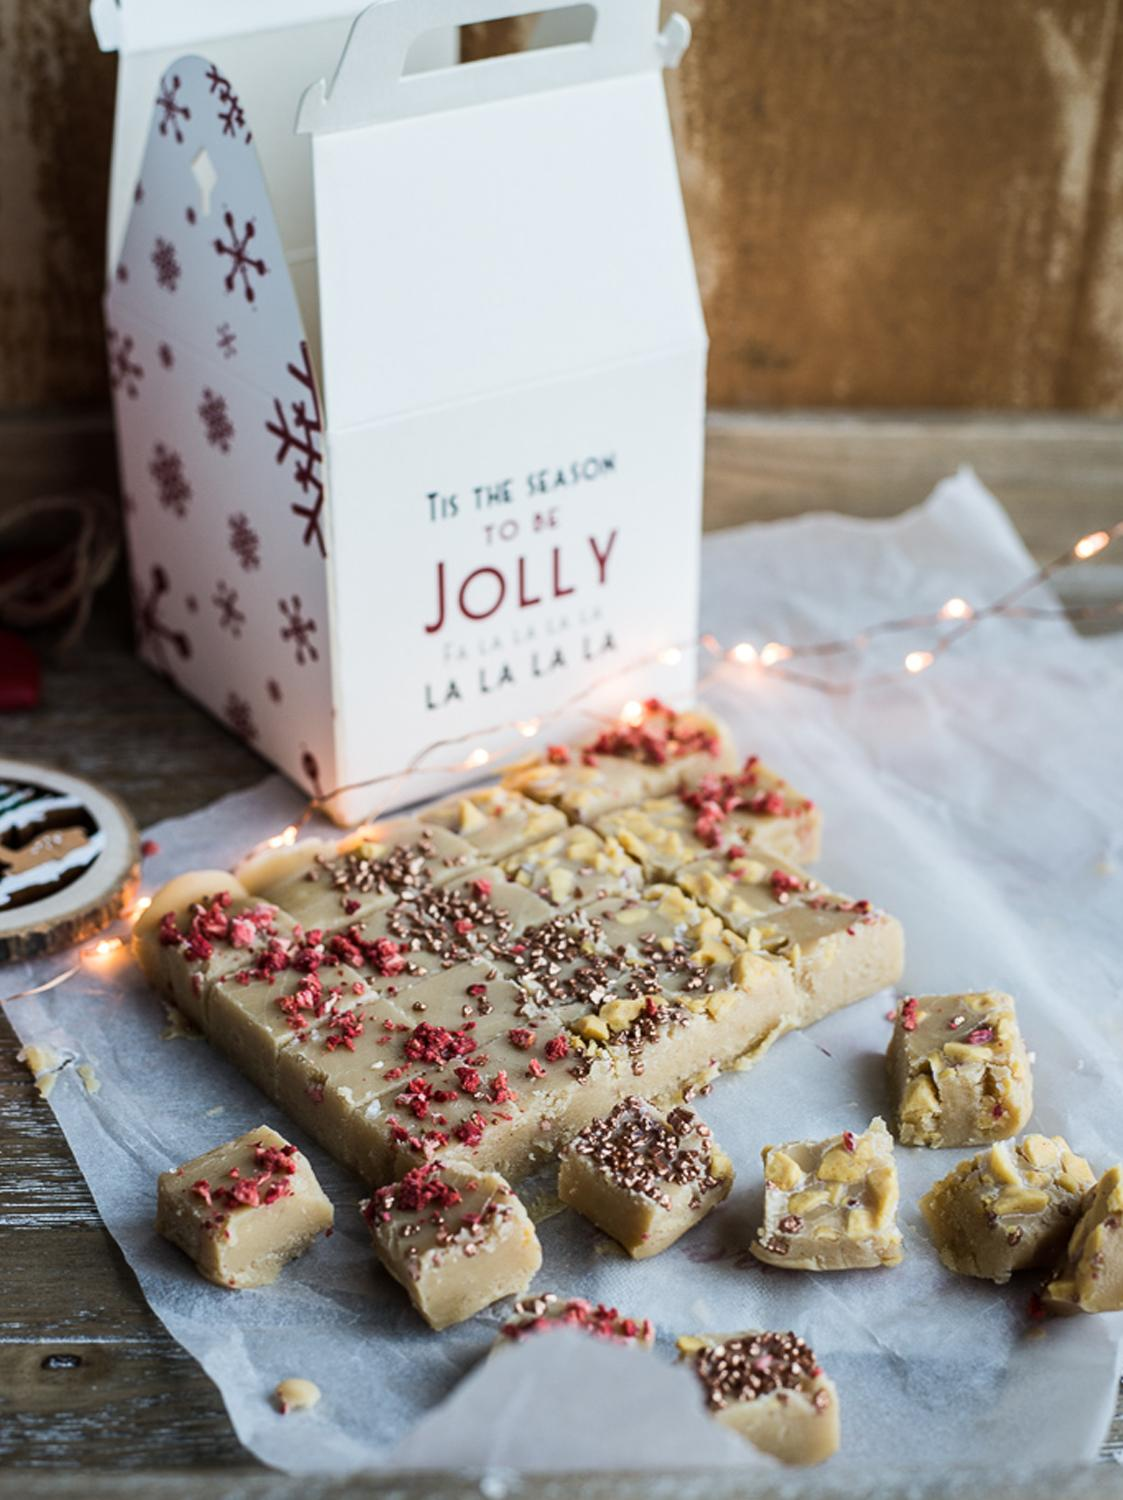 Edible gifts for Christmas | Galleries | Jamie Oliver